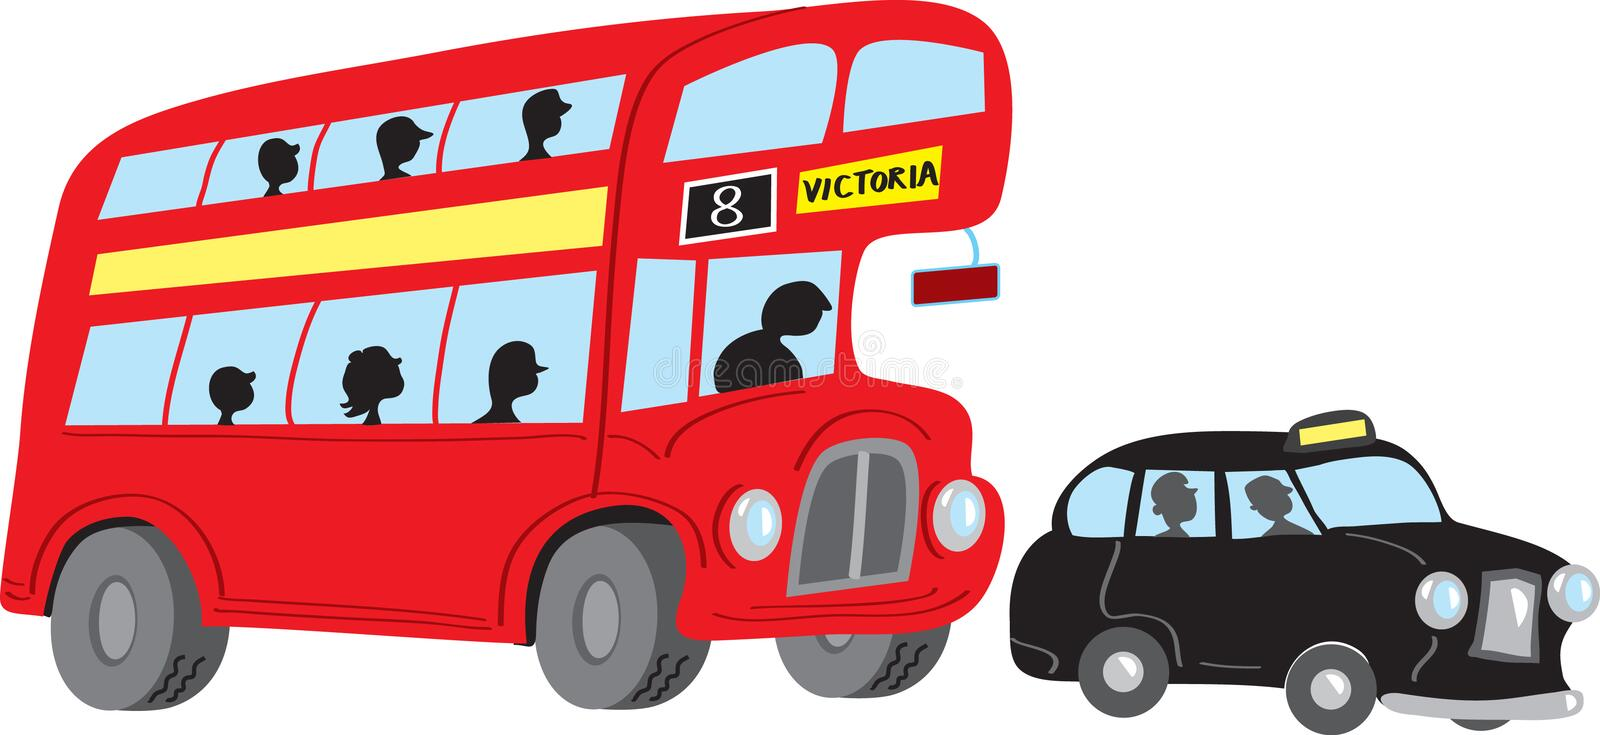 London bus and taxi vector illustration